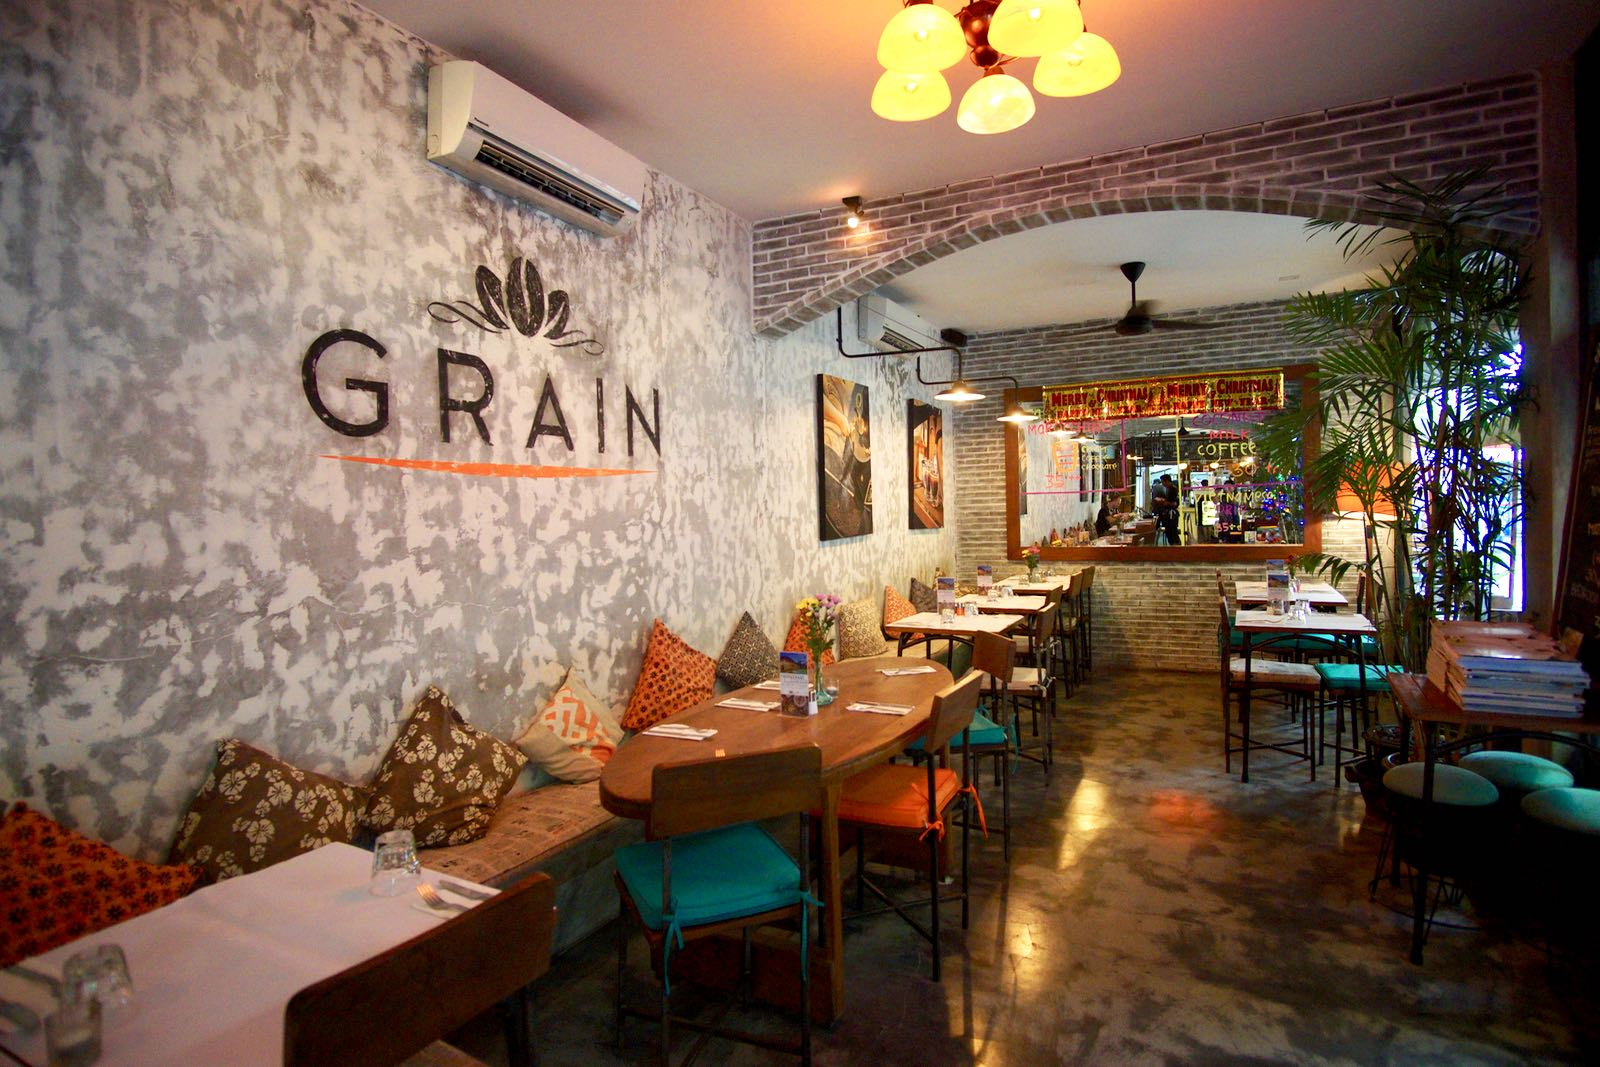 Lower Floor Grain Cafe